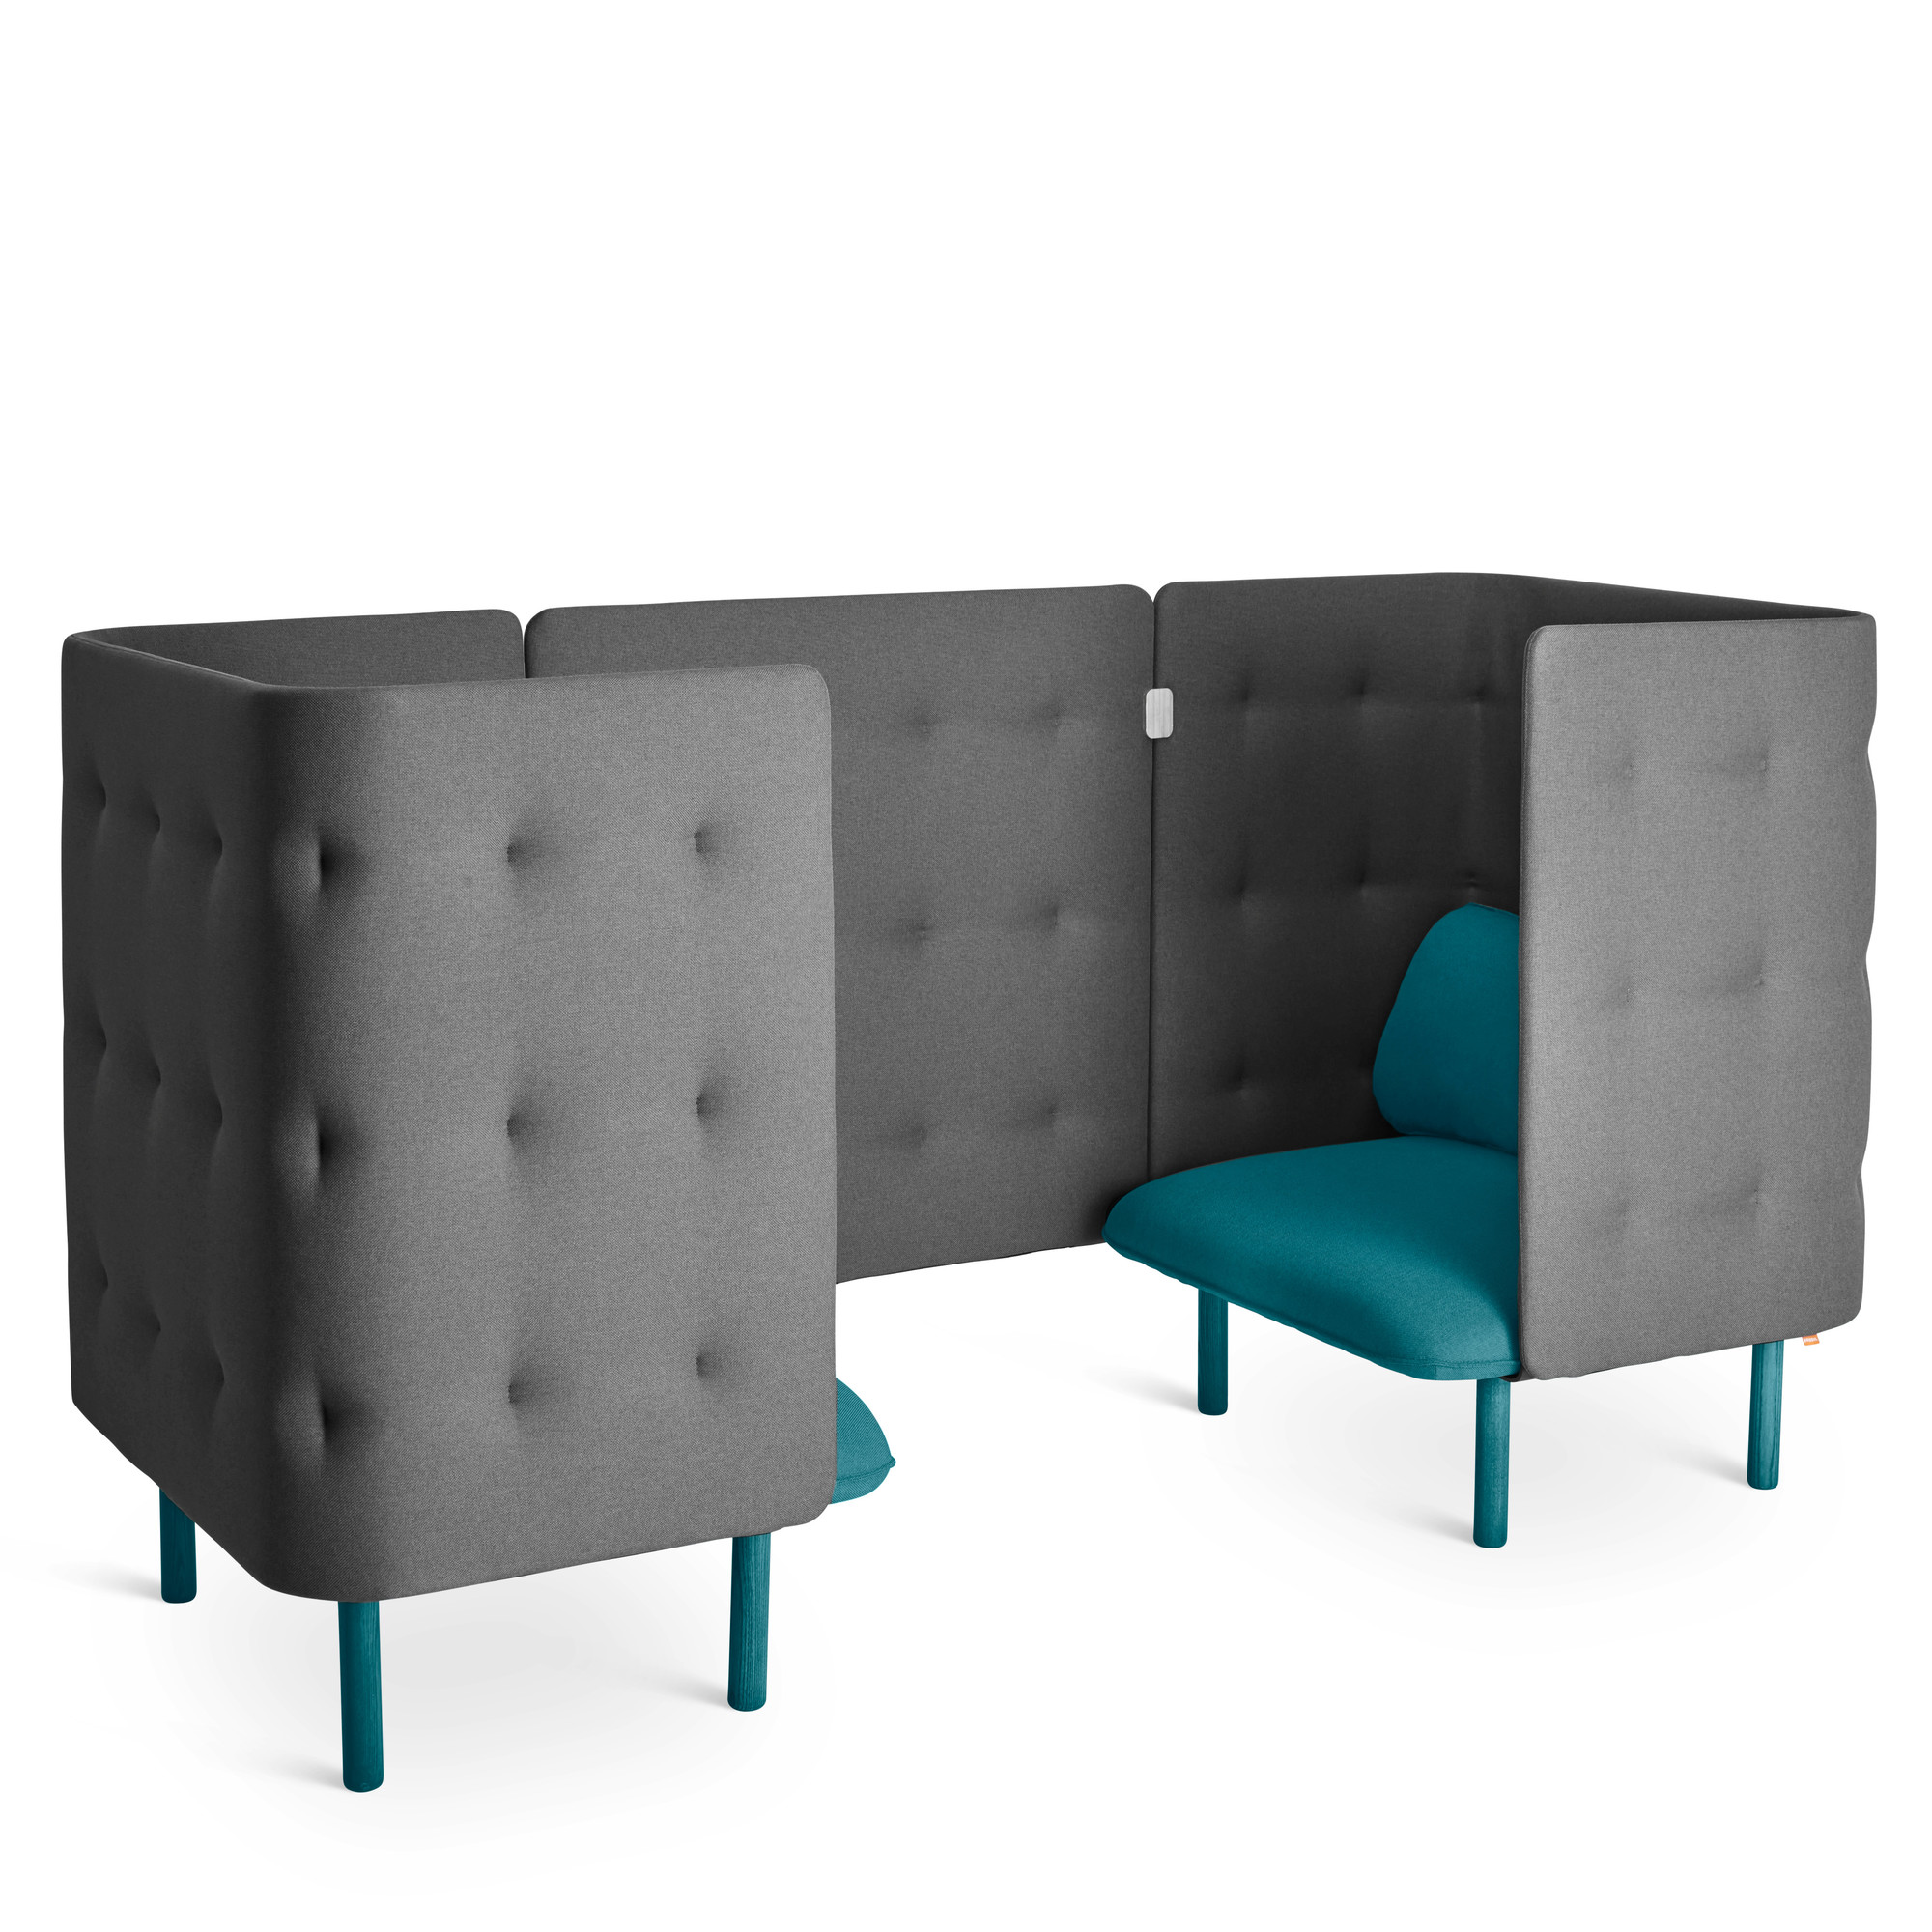 teal colored chairs restaurant free shipping dark gray qt chair booth lounge poppin